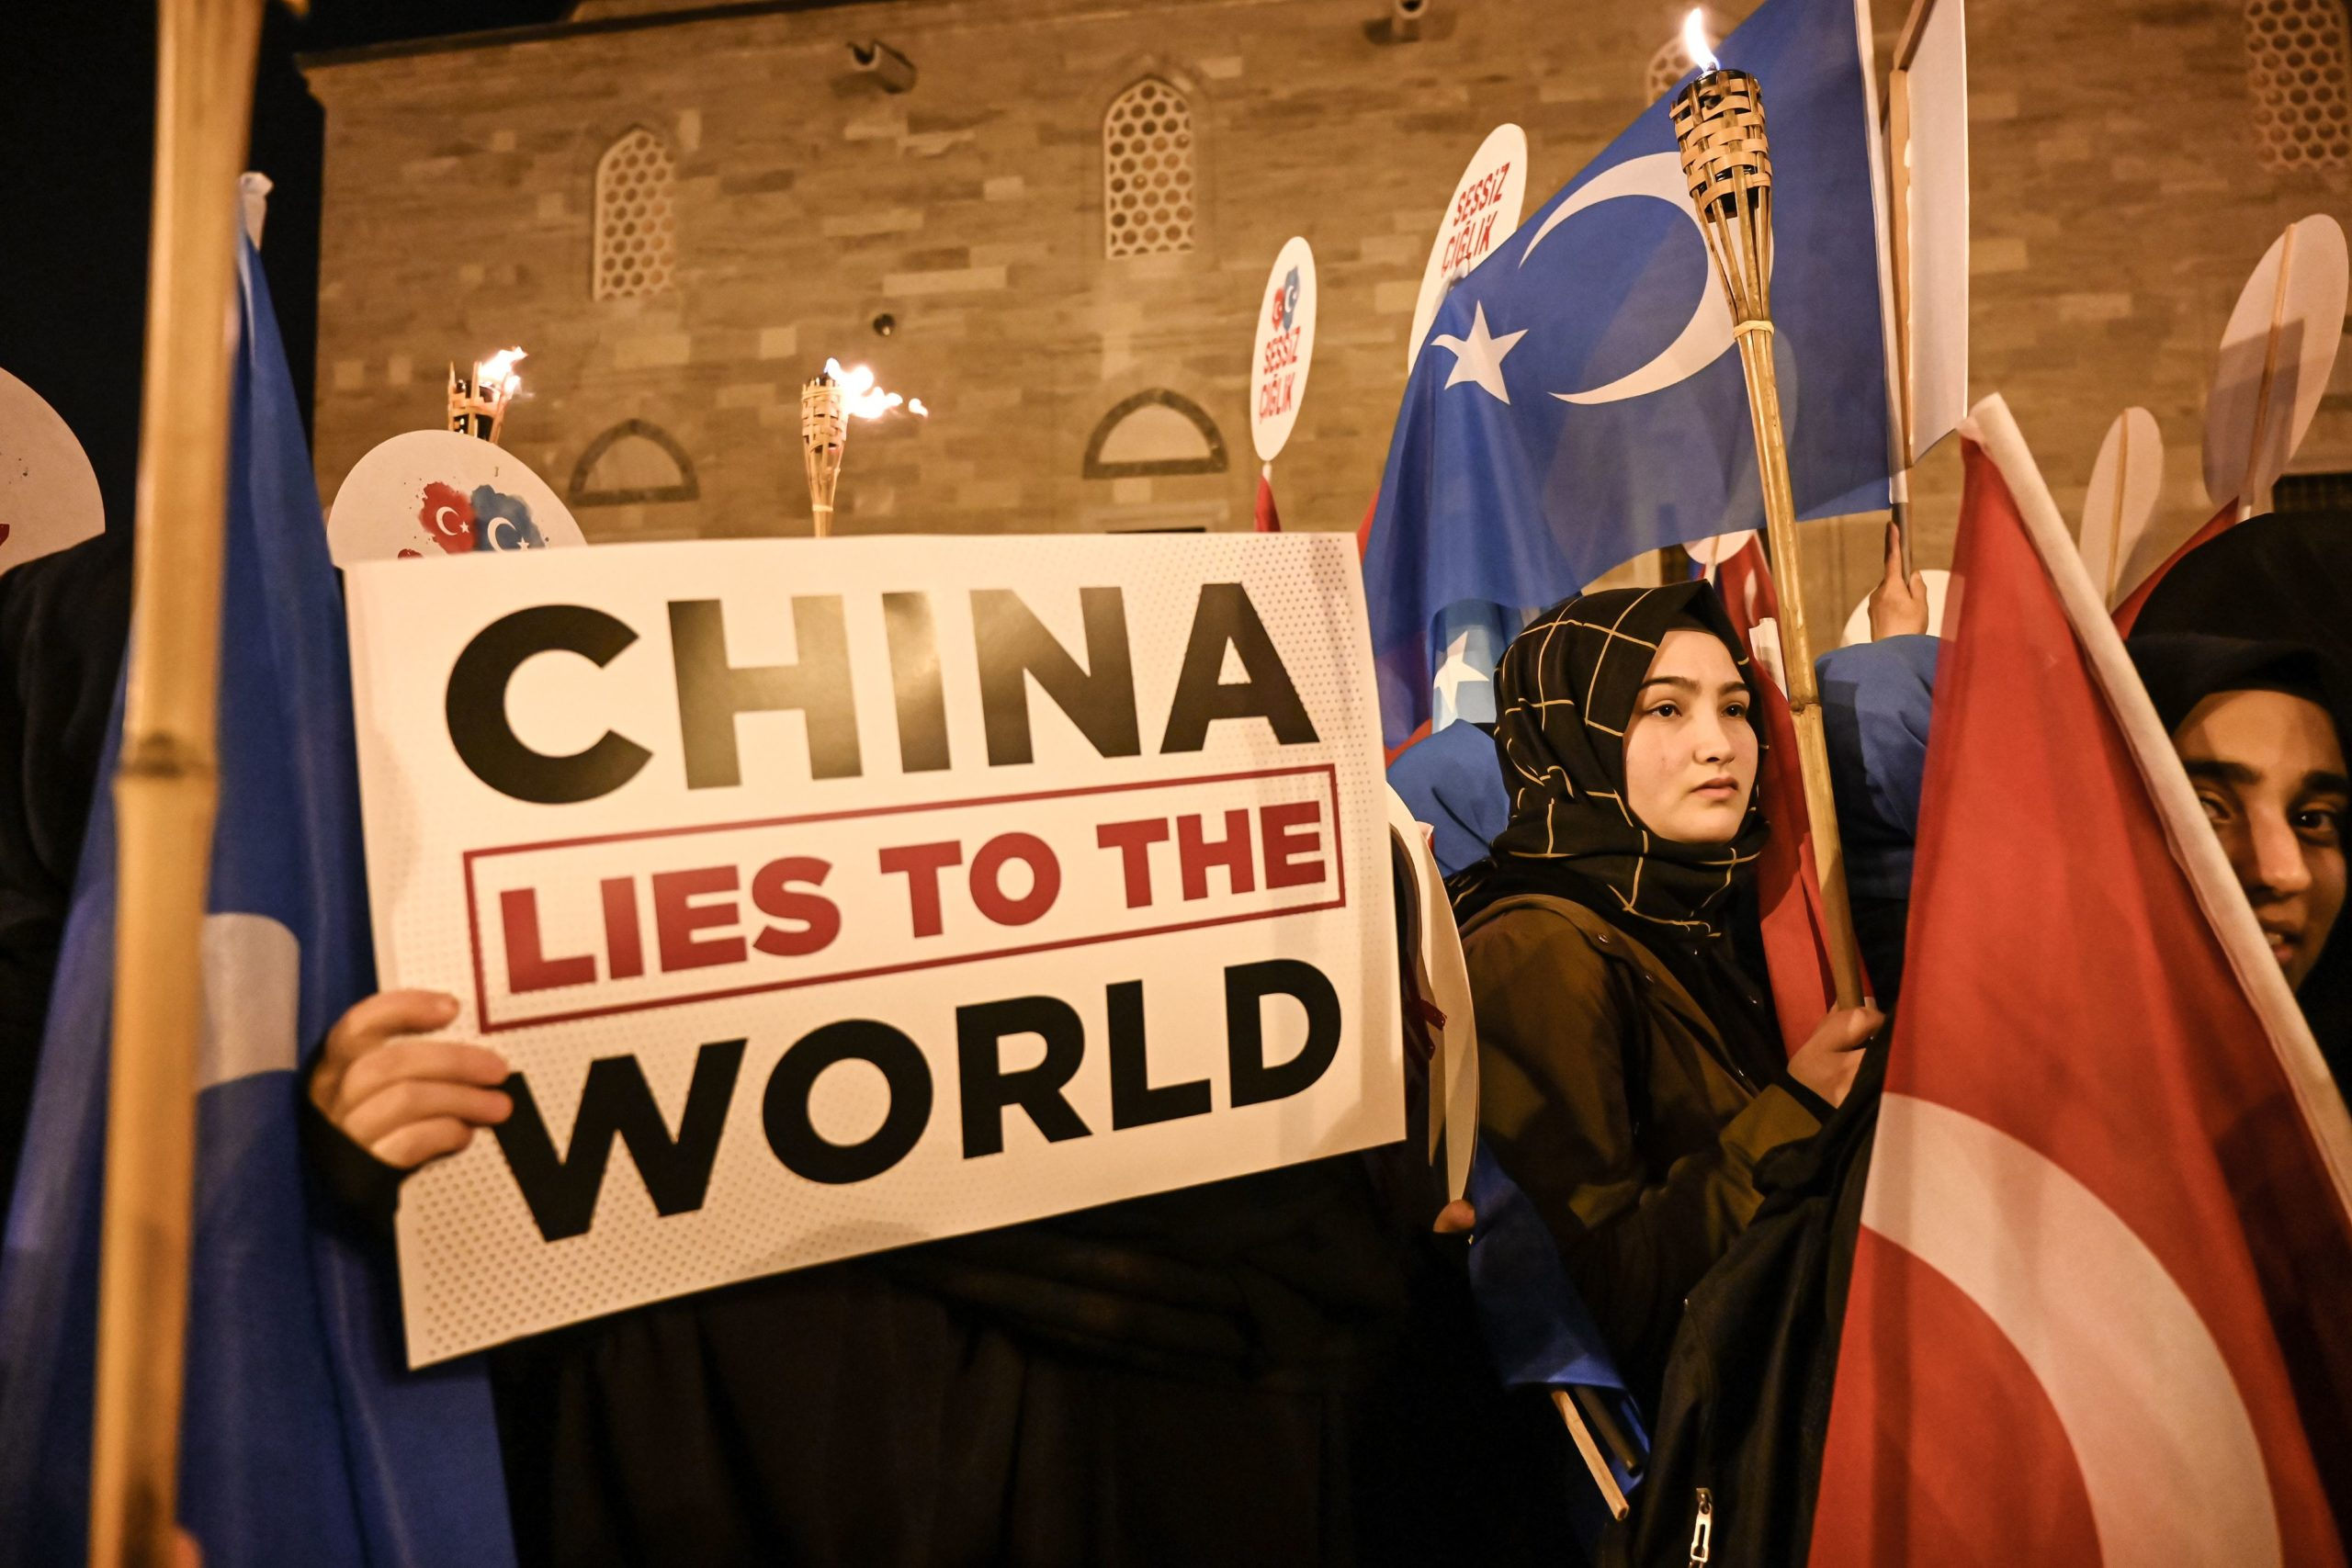 Supporters of China's Muslim Uighur minority wave flag of East Turkestan and hold placards on December 20, 2019 during a demostration at Fatih in Istanbul. - More than 1,000 protesters marched on December 20, 2019, in Istanbul to protest against China over its treatment of mainly Muslim Uighurs in Xinjiang, an AFP correspondent said. They called for an end to the crackdown in China's northwestern region, where upwards of one million Uighurs and other mostly Muslim minorities are believed to be held in re-education camps. (Photo by Ozan KOSE / AFP) (Photo by OZAN KOSE/AFP via Getty Images)